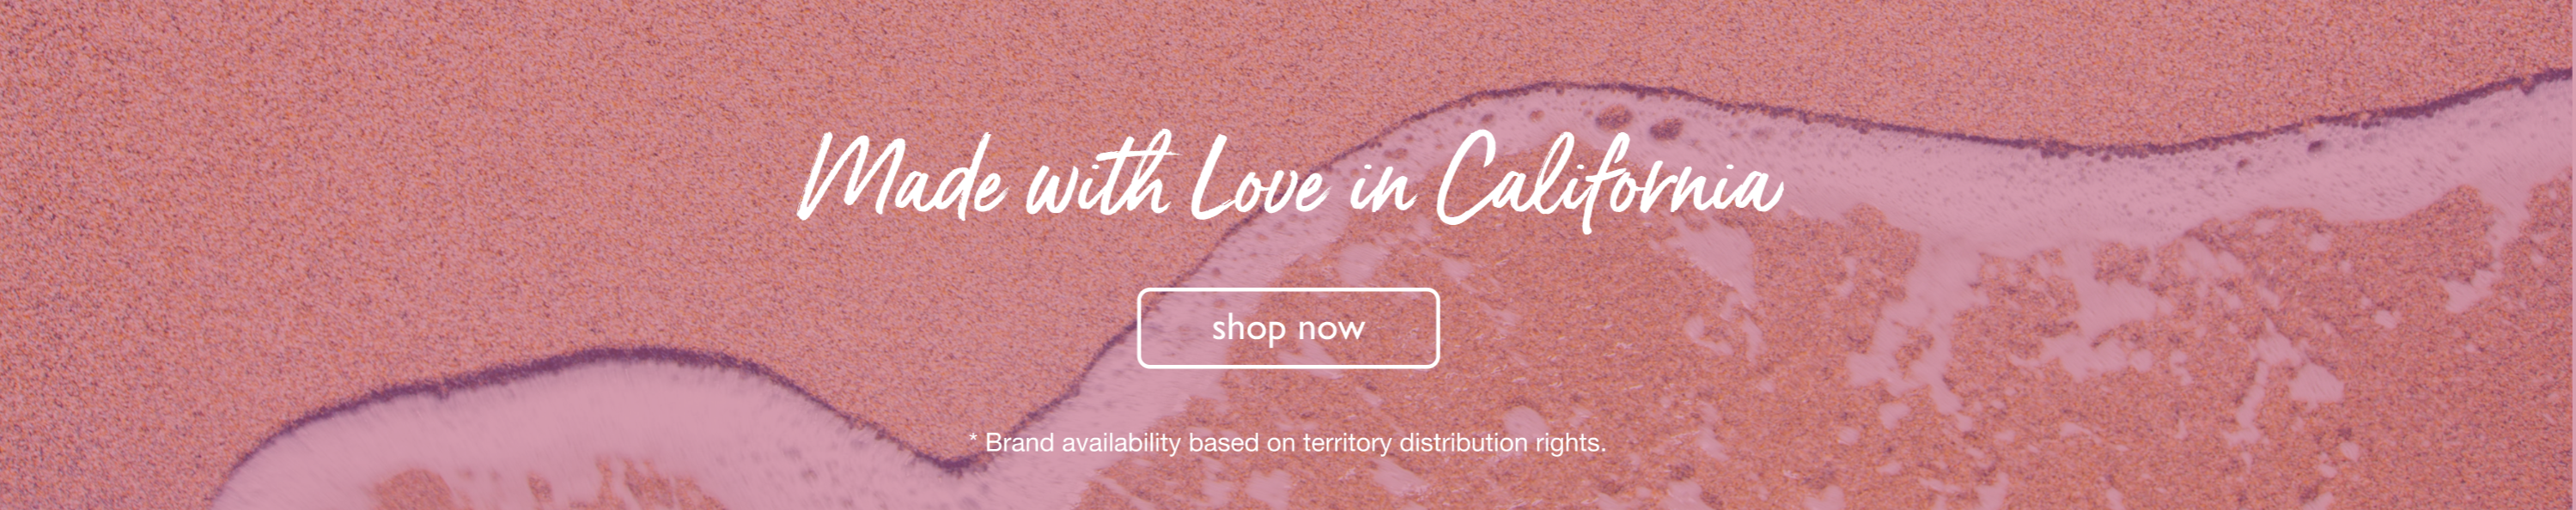 Made with love in california | Shop now | Brand availability based on territory distribution rights